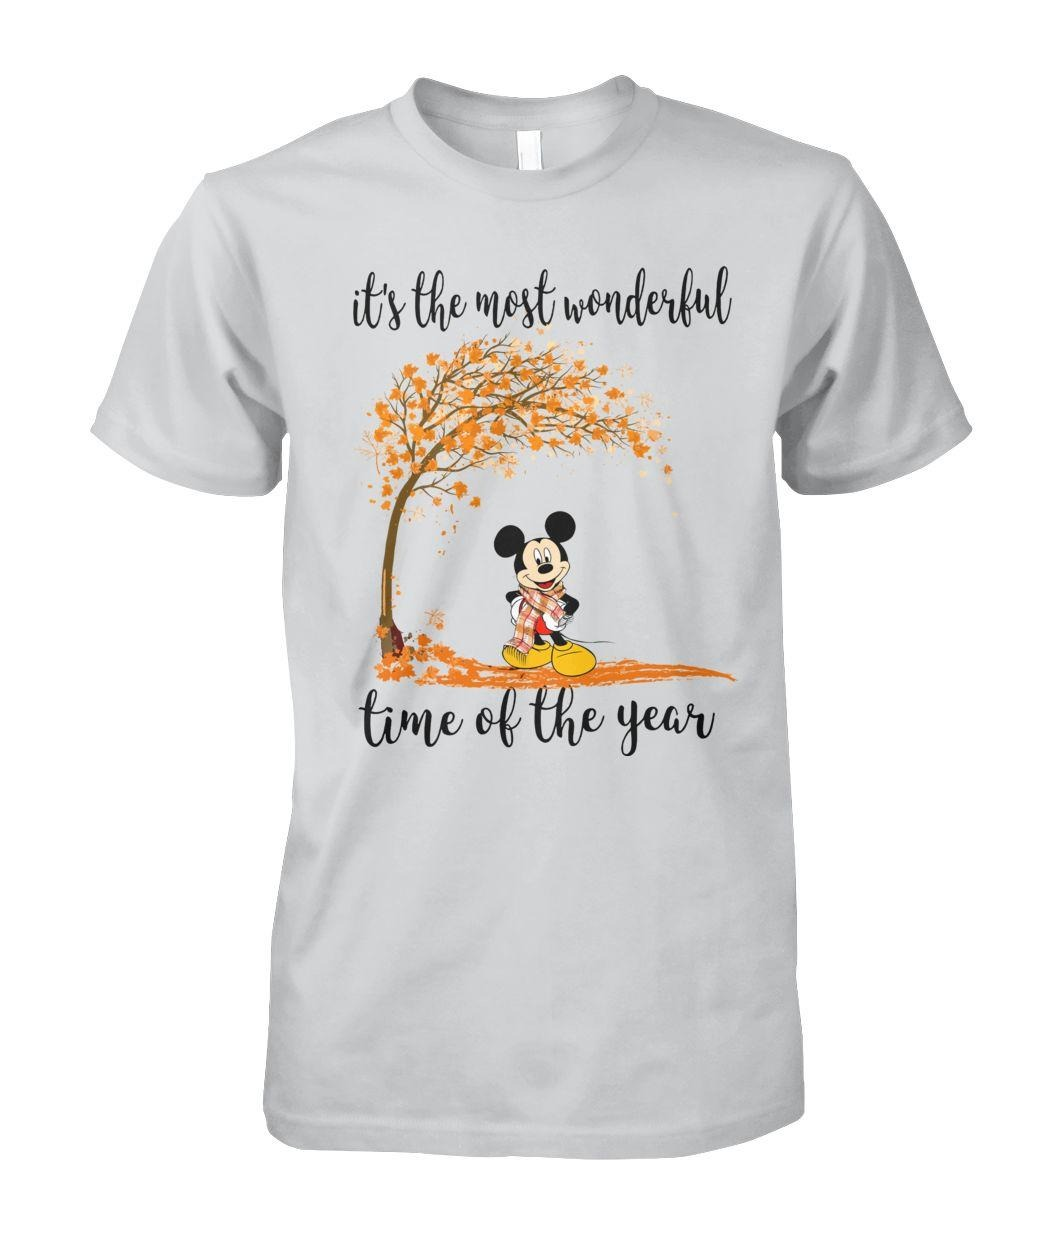 Mickey Mouse It's the most wonderful time of the year autumn shirt